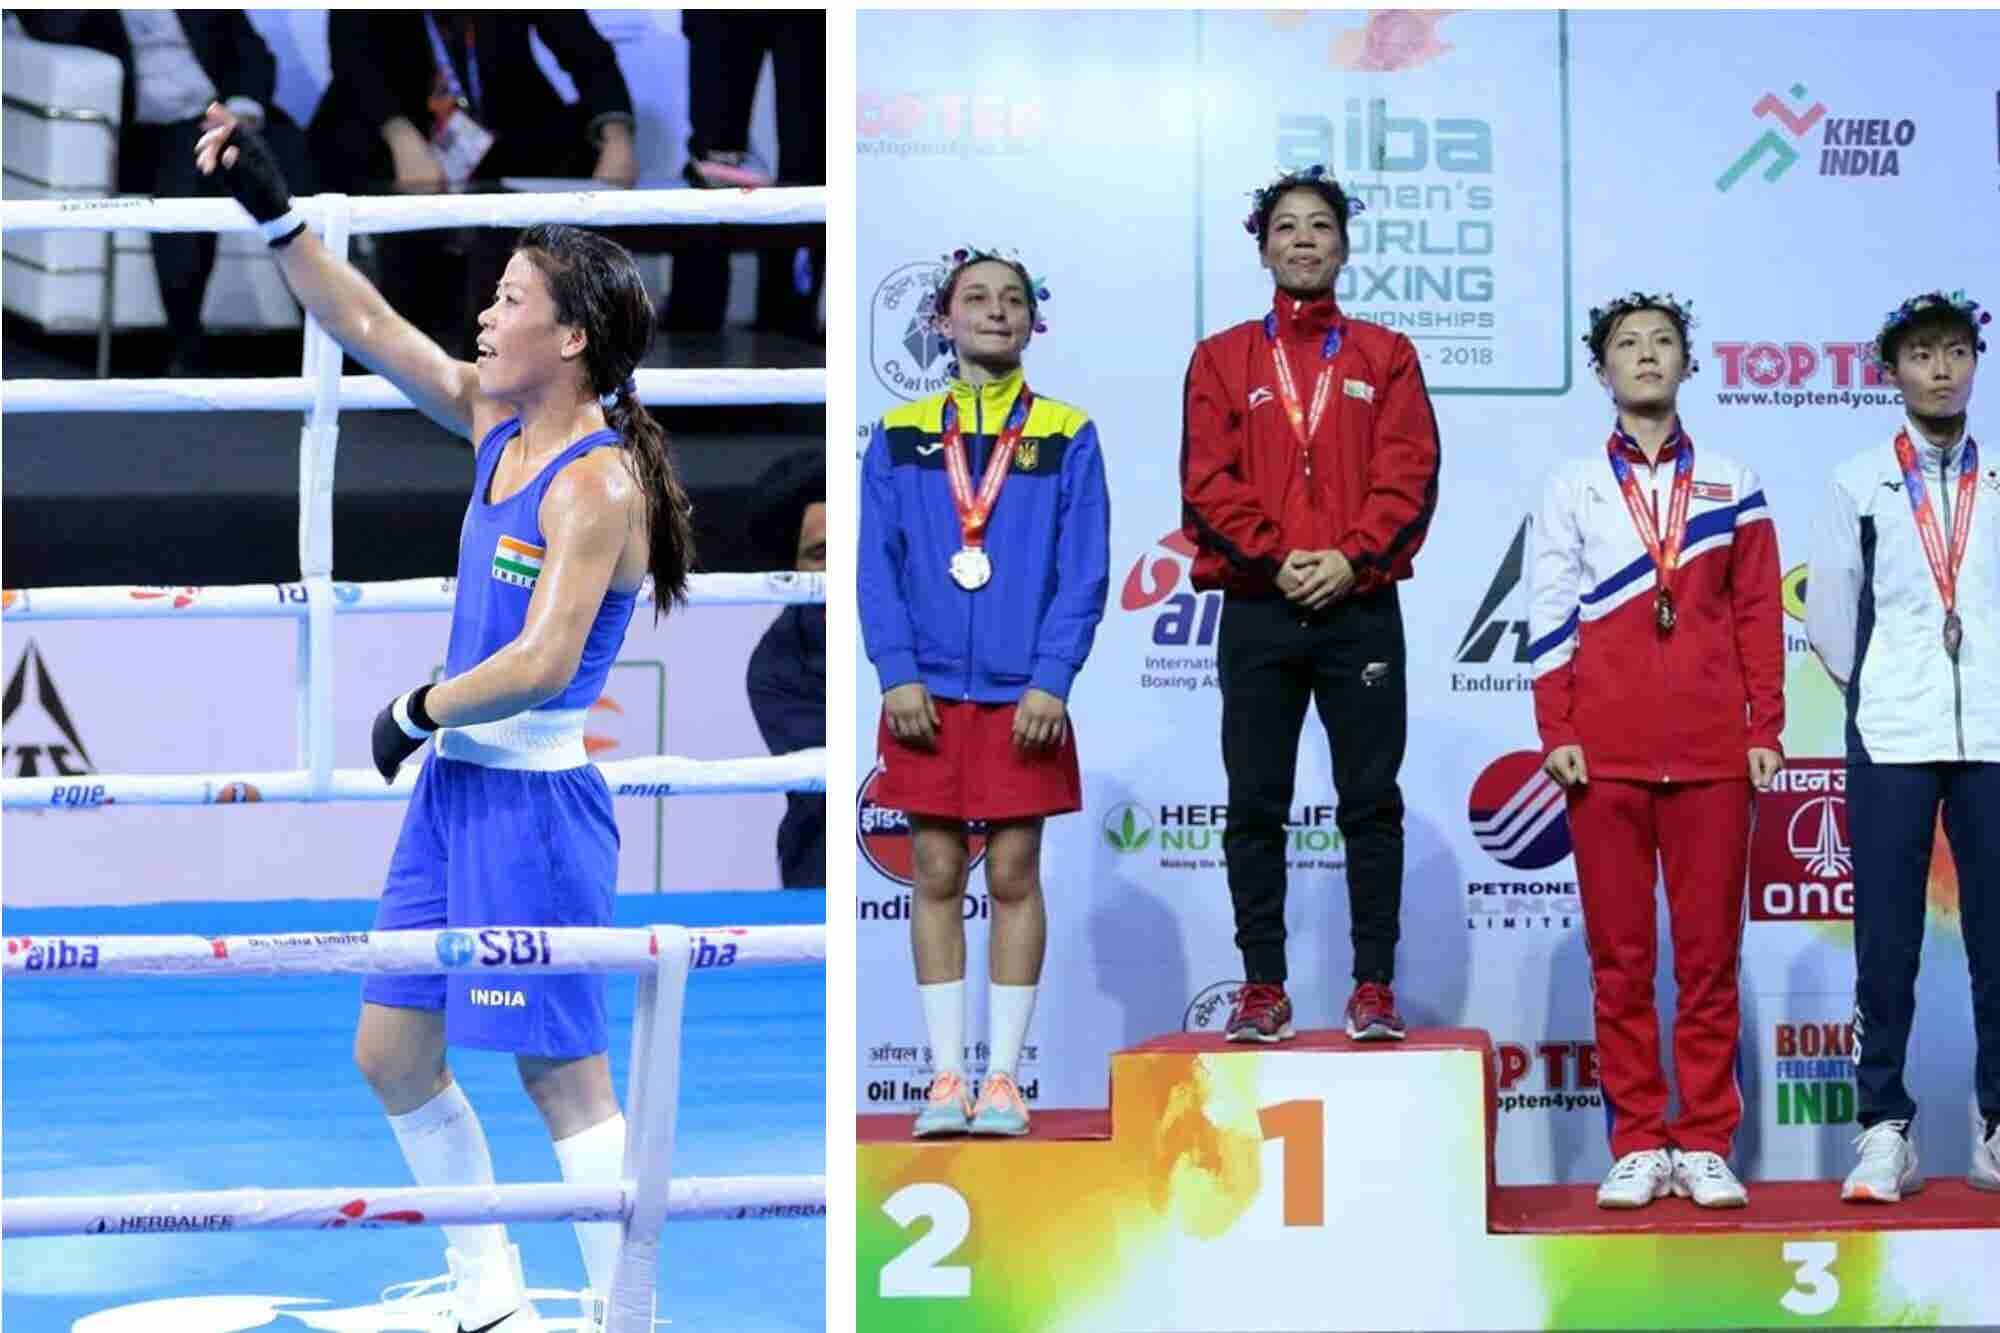 Mary Kom Creates History Yet Again; Now the World's Best Woman Boxer!